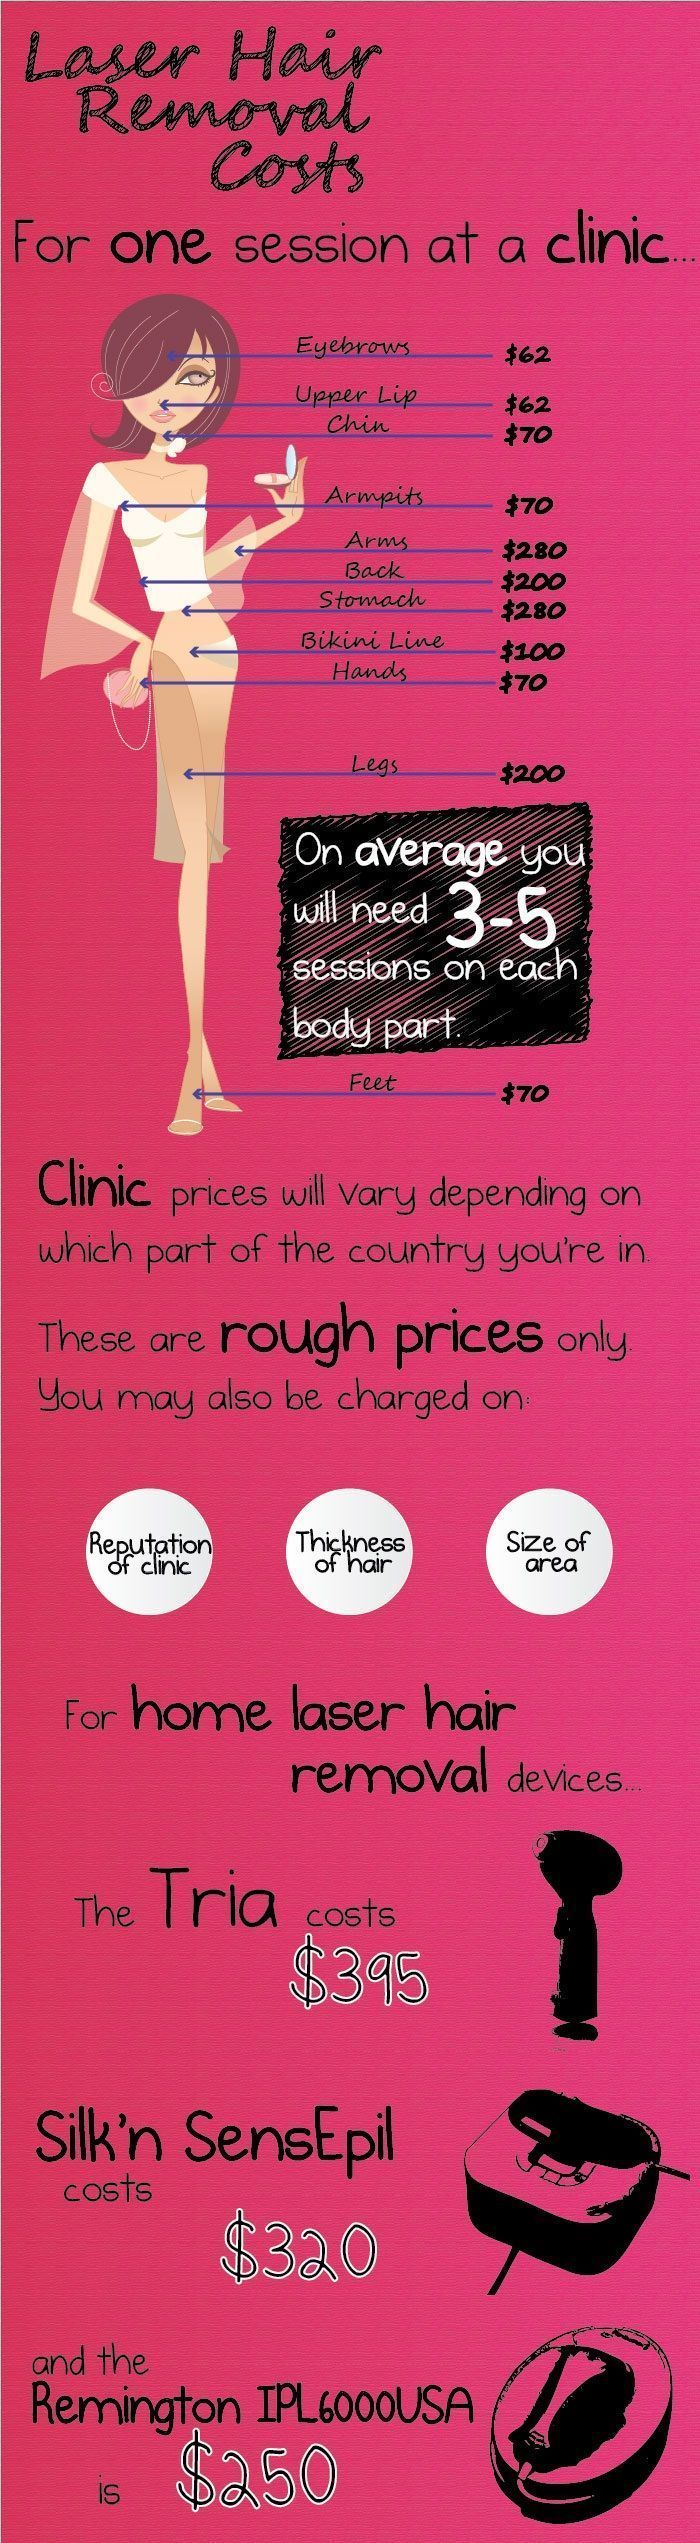 A look at some of the costs associated with laser hair removal. Both at home treatment and clinic treatments looked at.: http://besthairremovals.com/best-hair-removal-guide/hair-removal-methods-at-home/